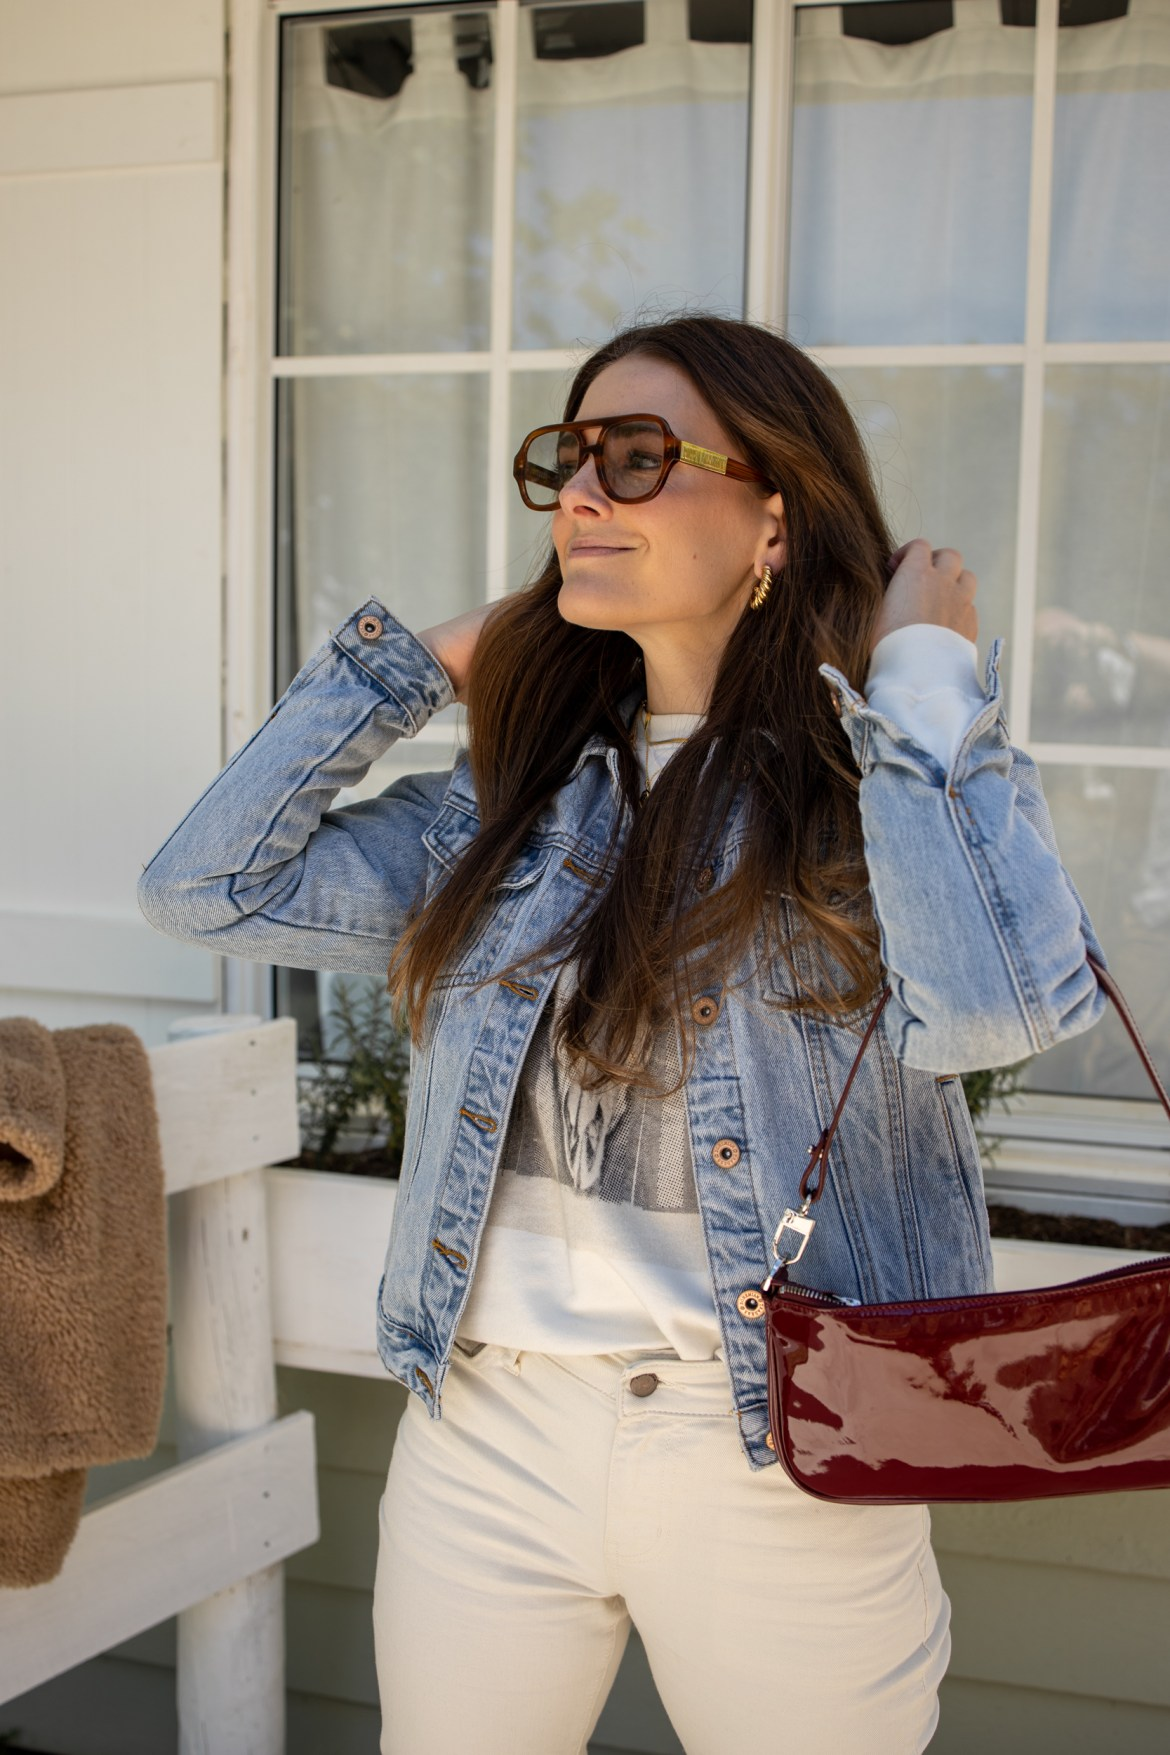 Outfit idea for cold weather. Anine Bing sweater and denim jacket outfit